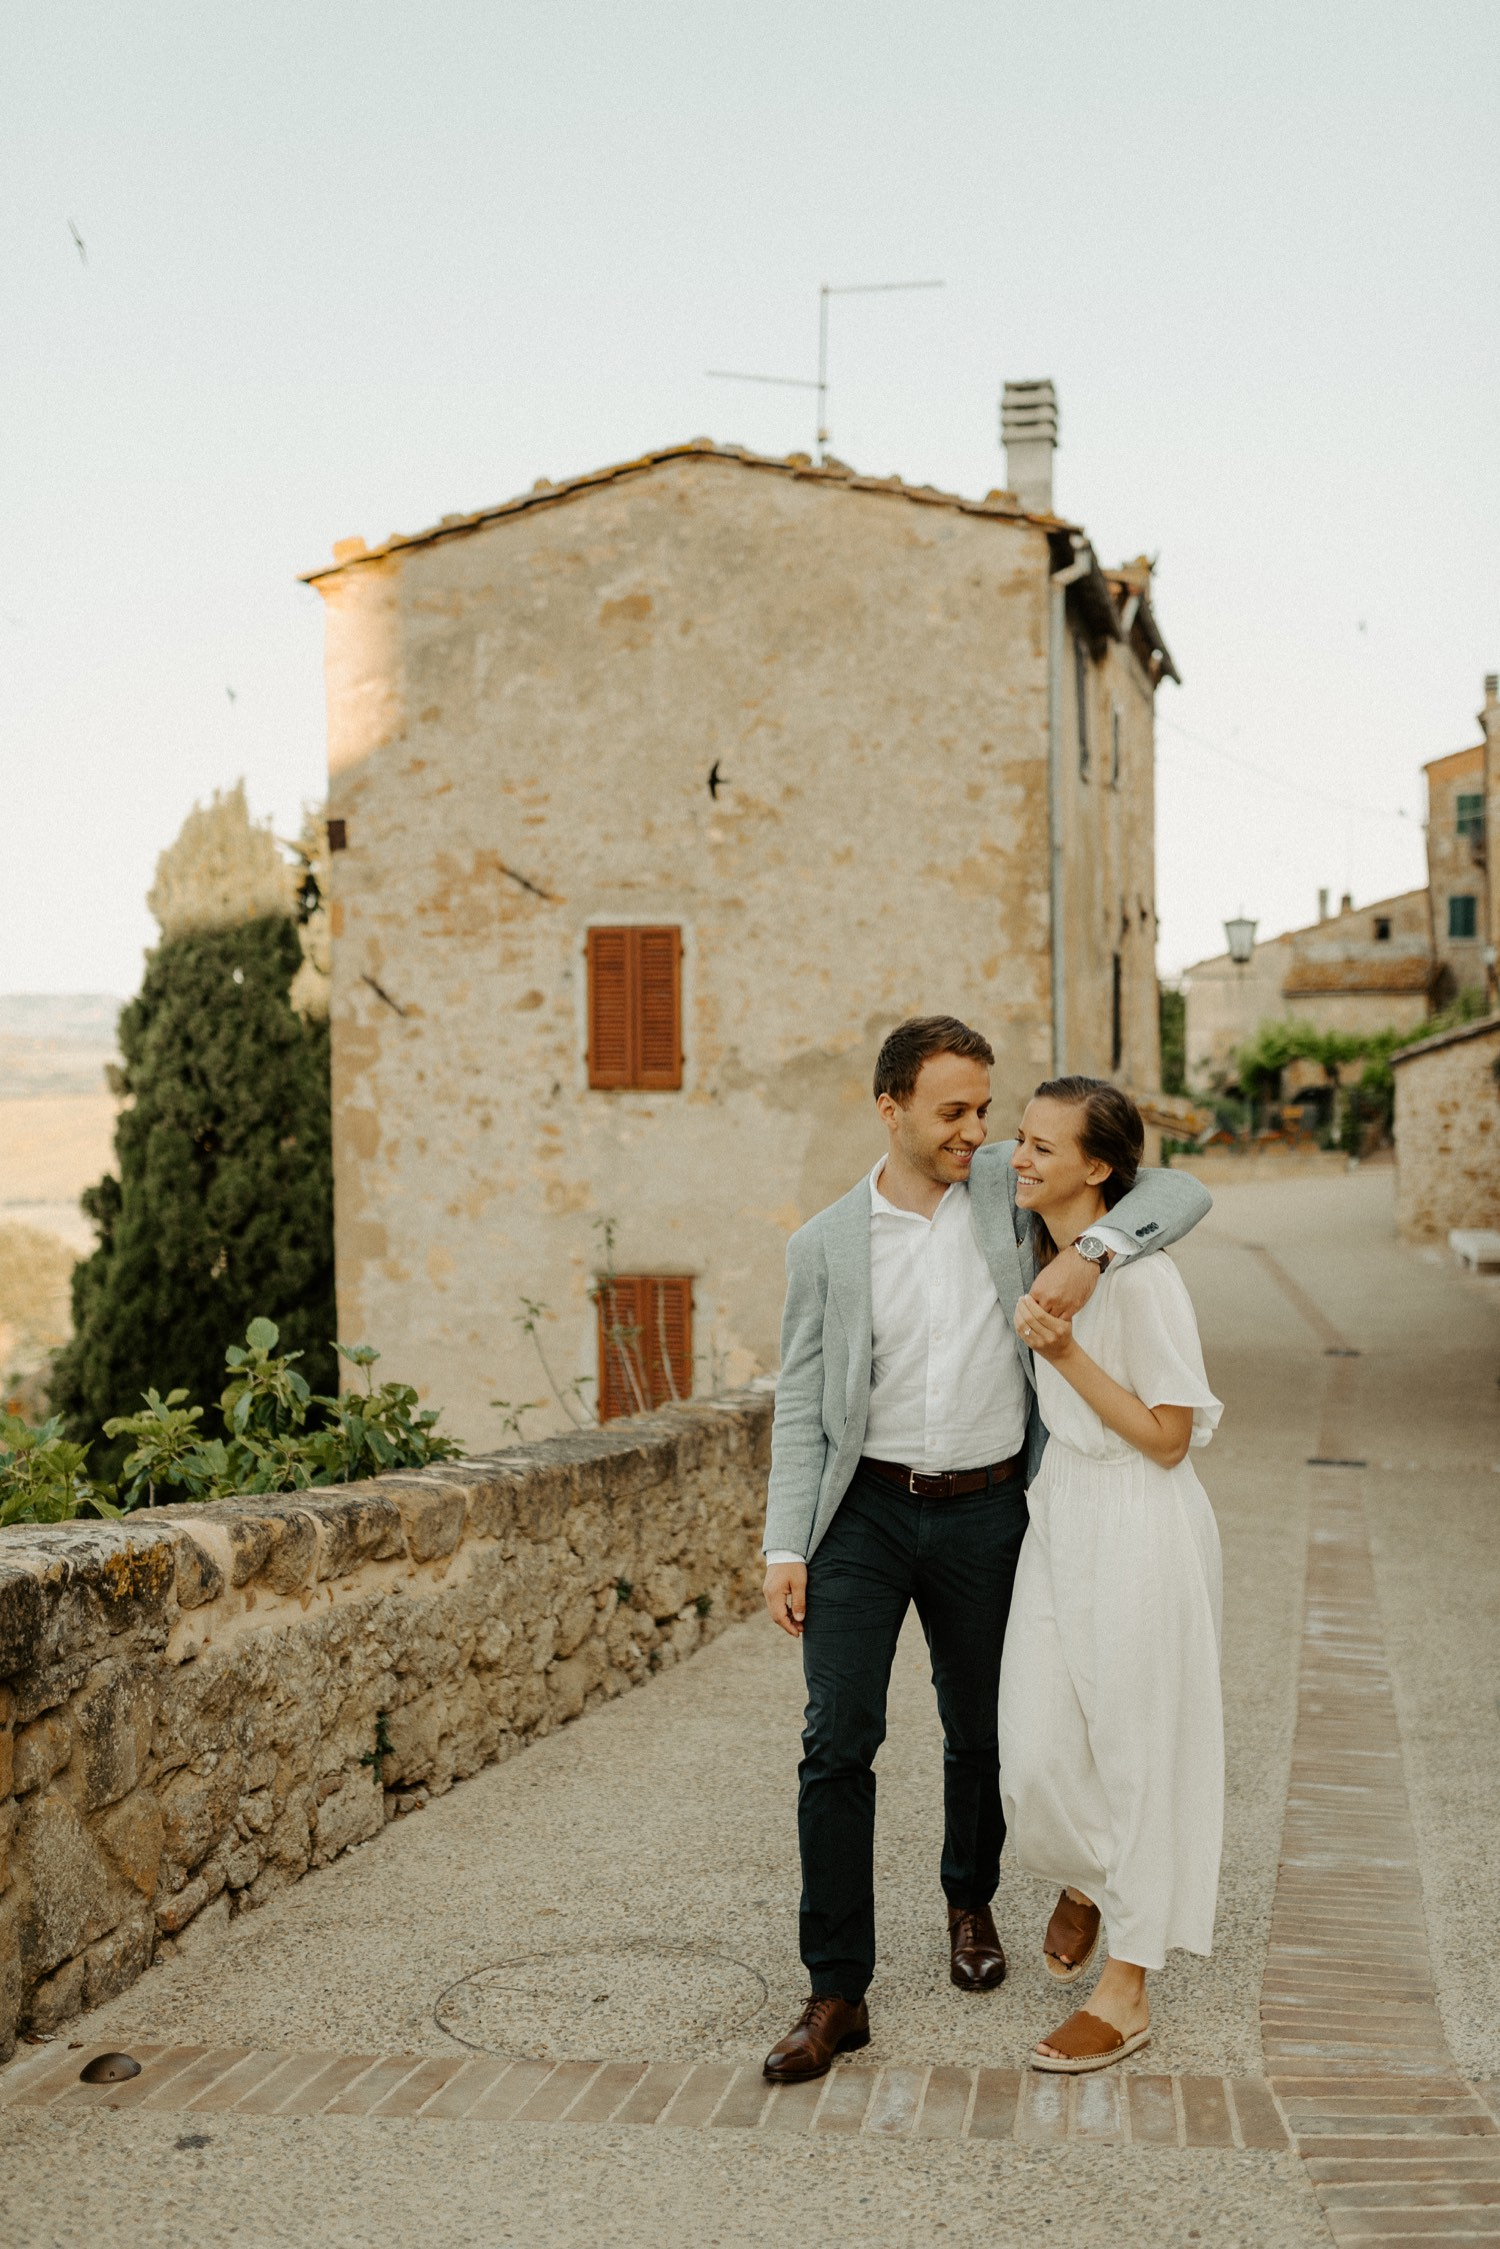 47_ali-dirk-pre-wedding-139_tuscany_siena_destination_wedding_italy_photography.jpg